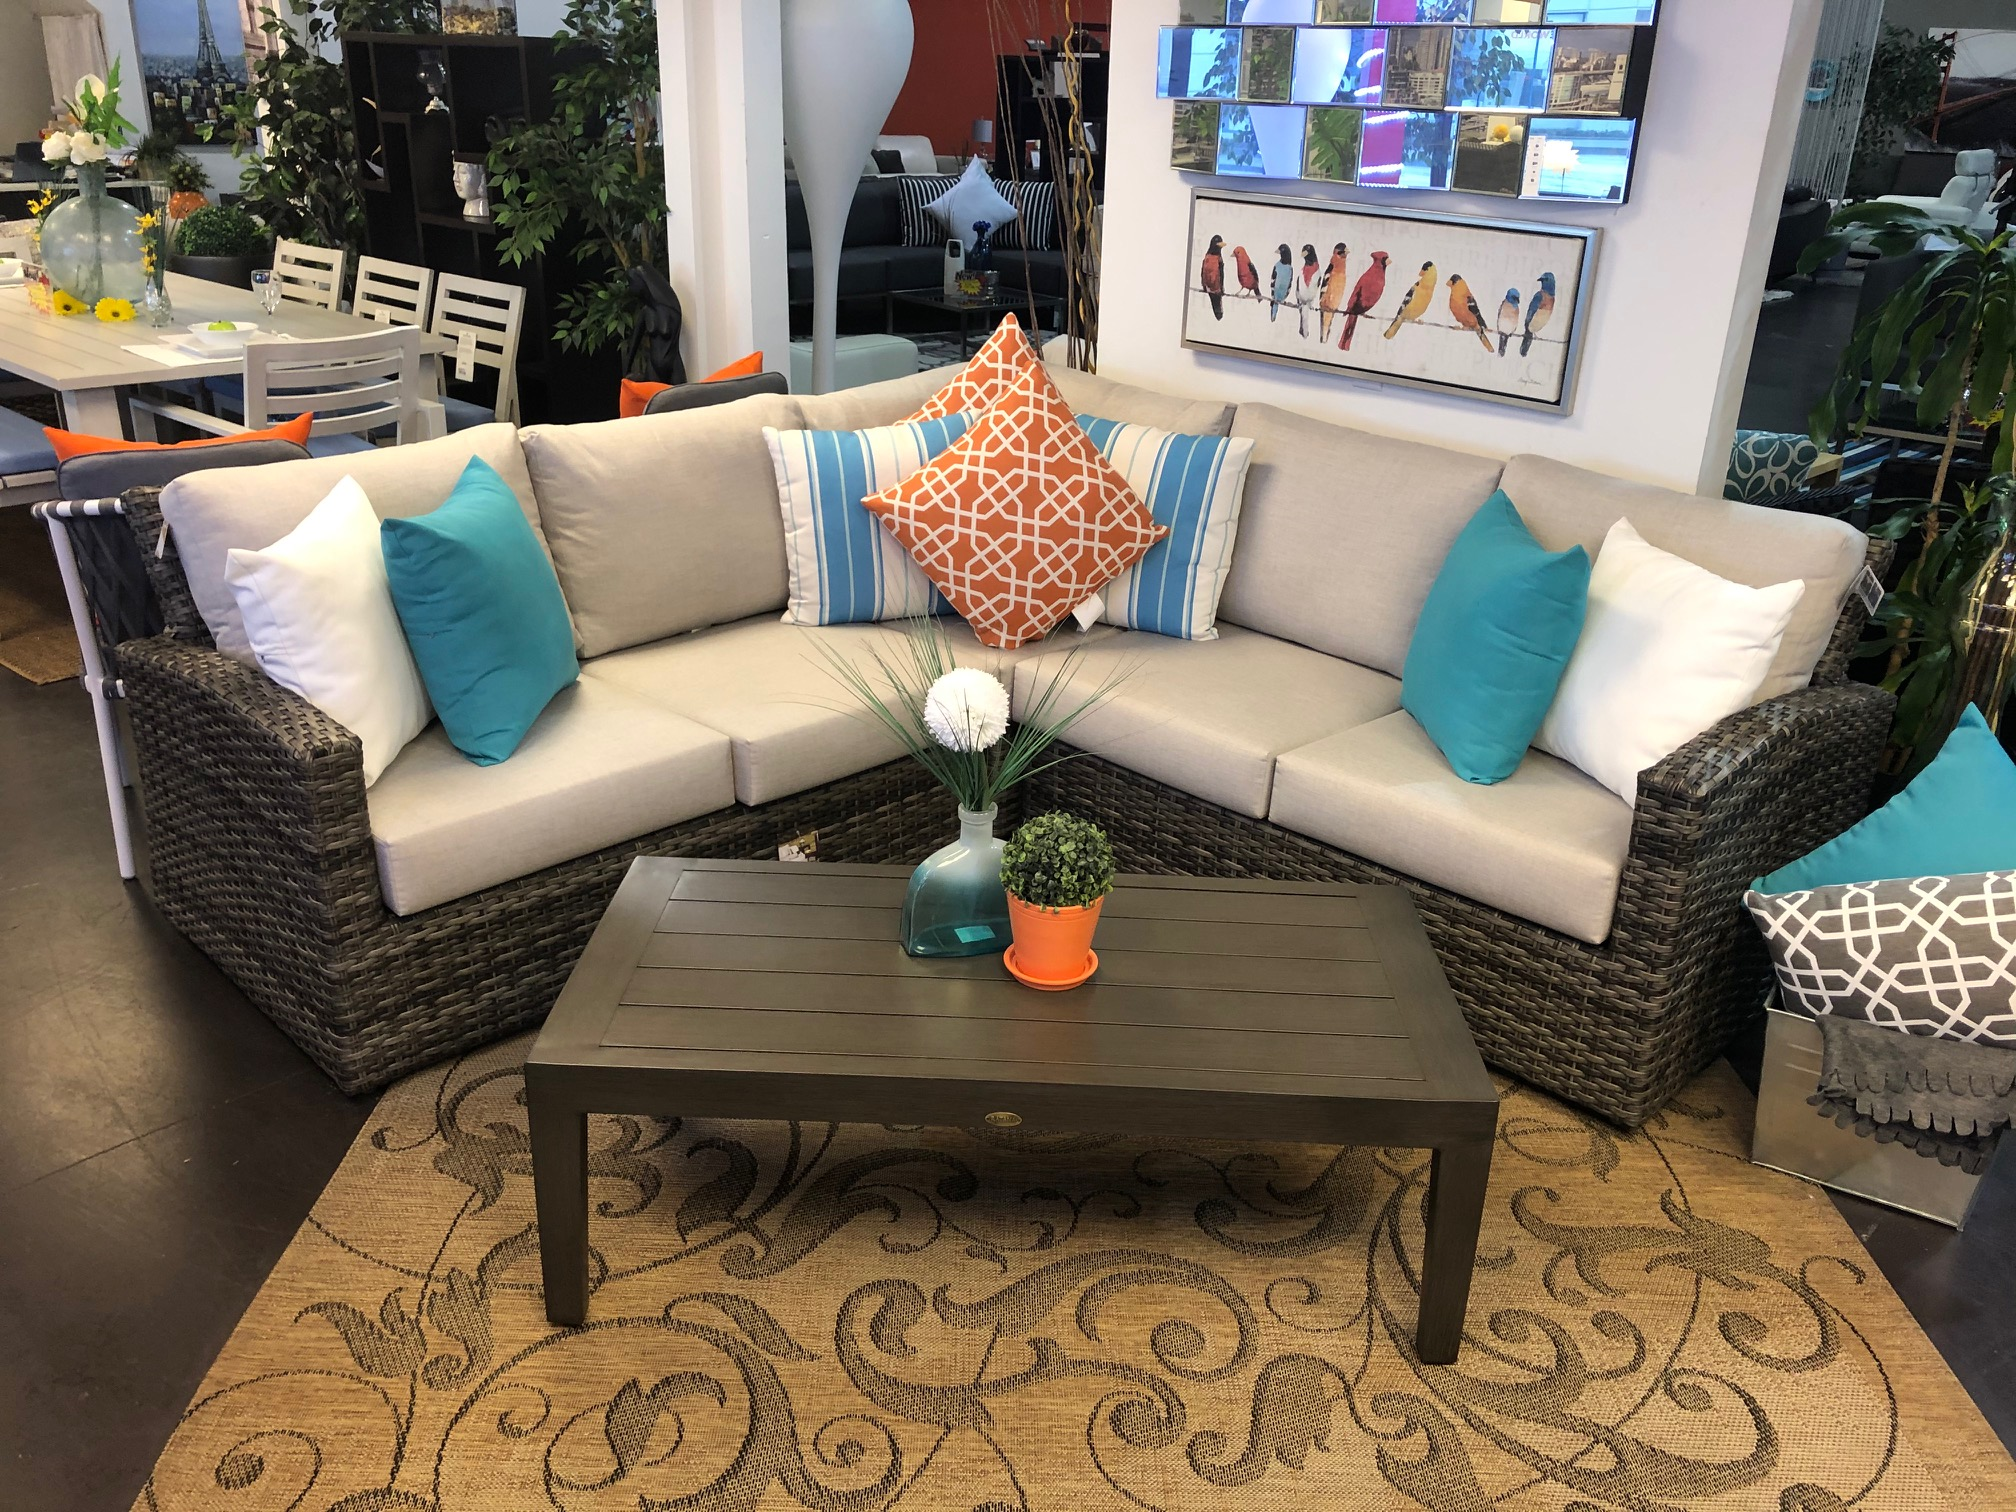 Grey wicker patio sectional with bright toss pillows & metal coffee table.